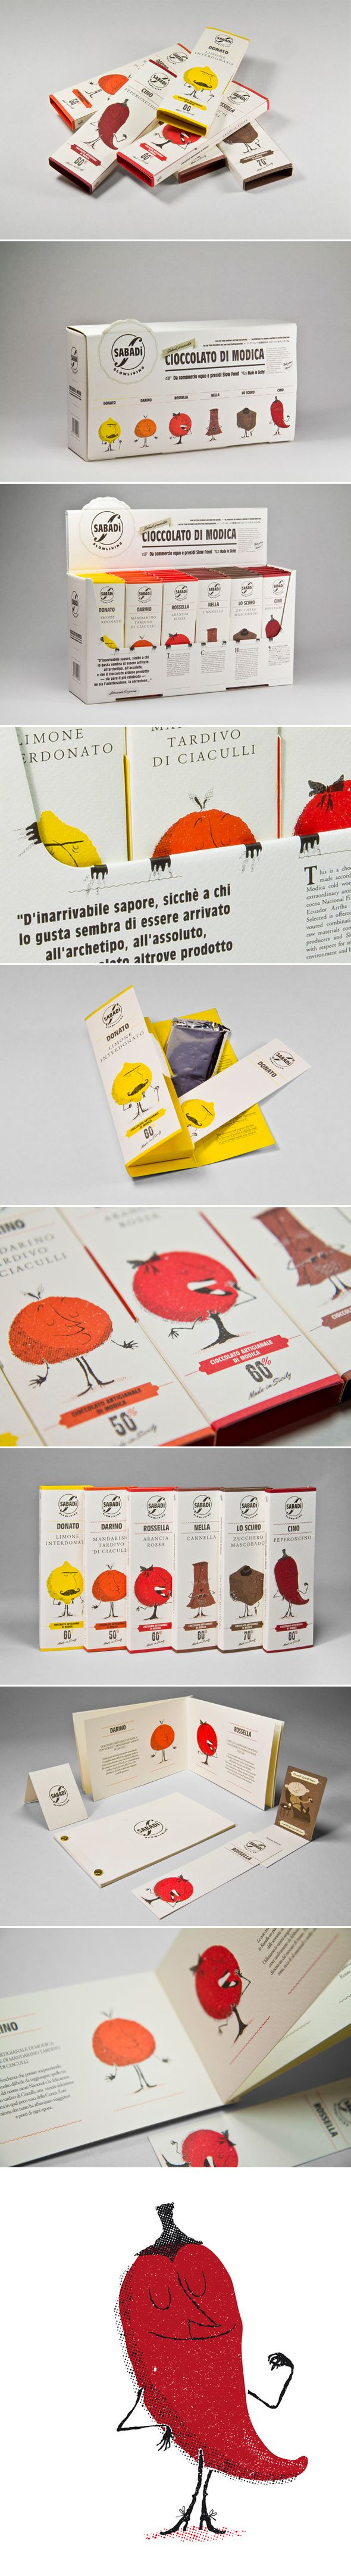 Chocolat Sabadi / design Happycentro. What a great series of fun packaging. PD